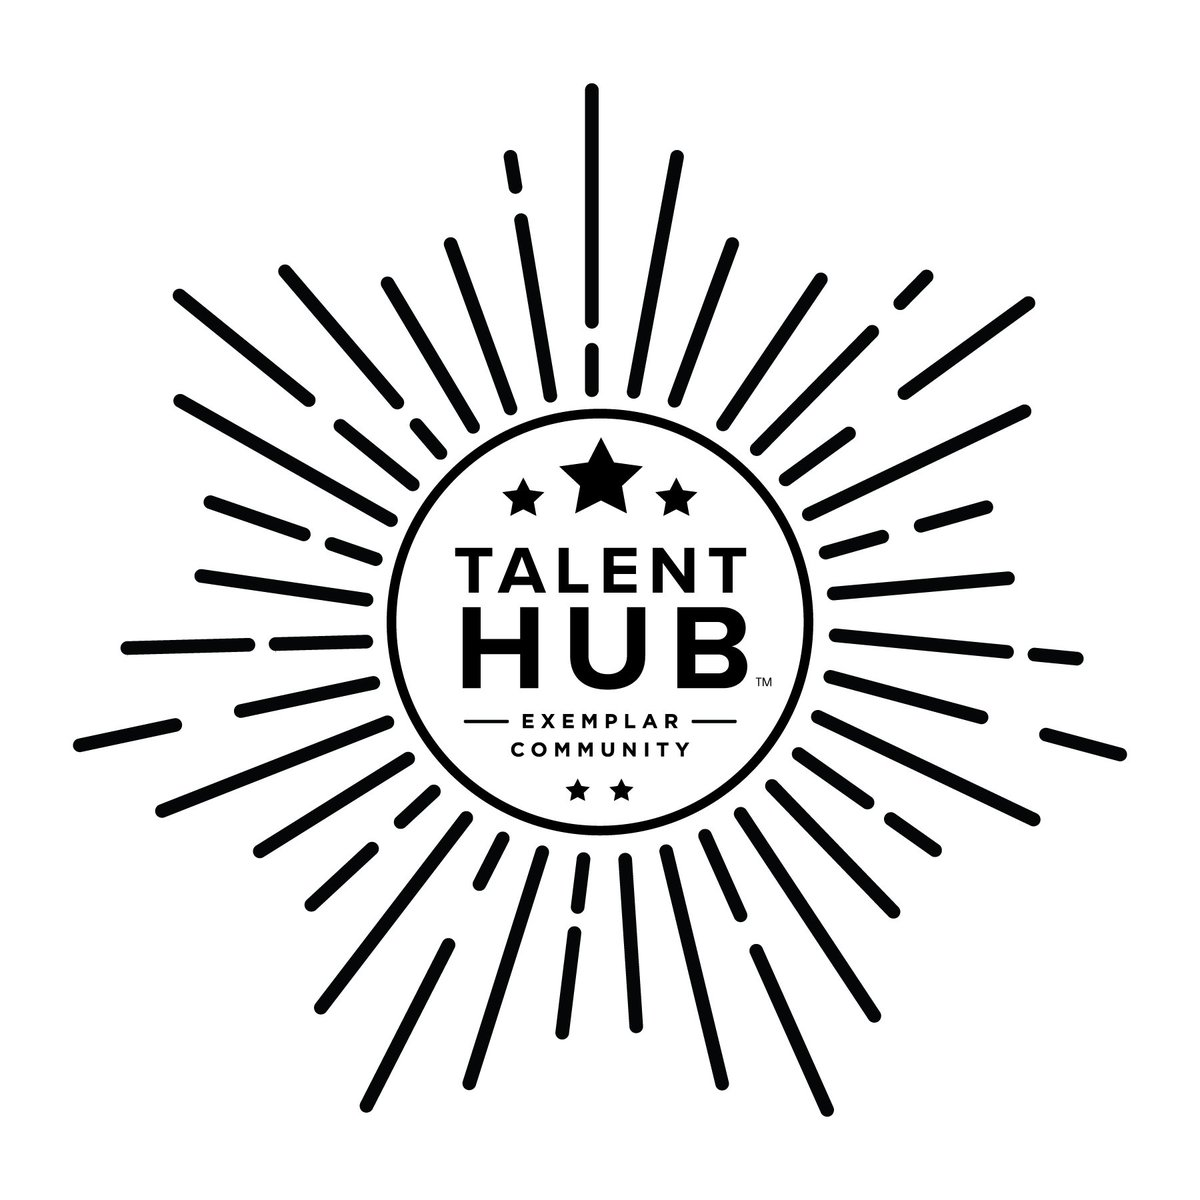 Proud to be named a @LuminaFound #TalentHub &amp; committed to increasing Racine &amp; Kenosha Counties&#39; post-secondary #edu  http:// luminafoundation.org/talent-hubs  &nbsp;  <br>http://pic.twitter.com/RSFOITM1zb